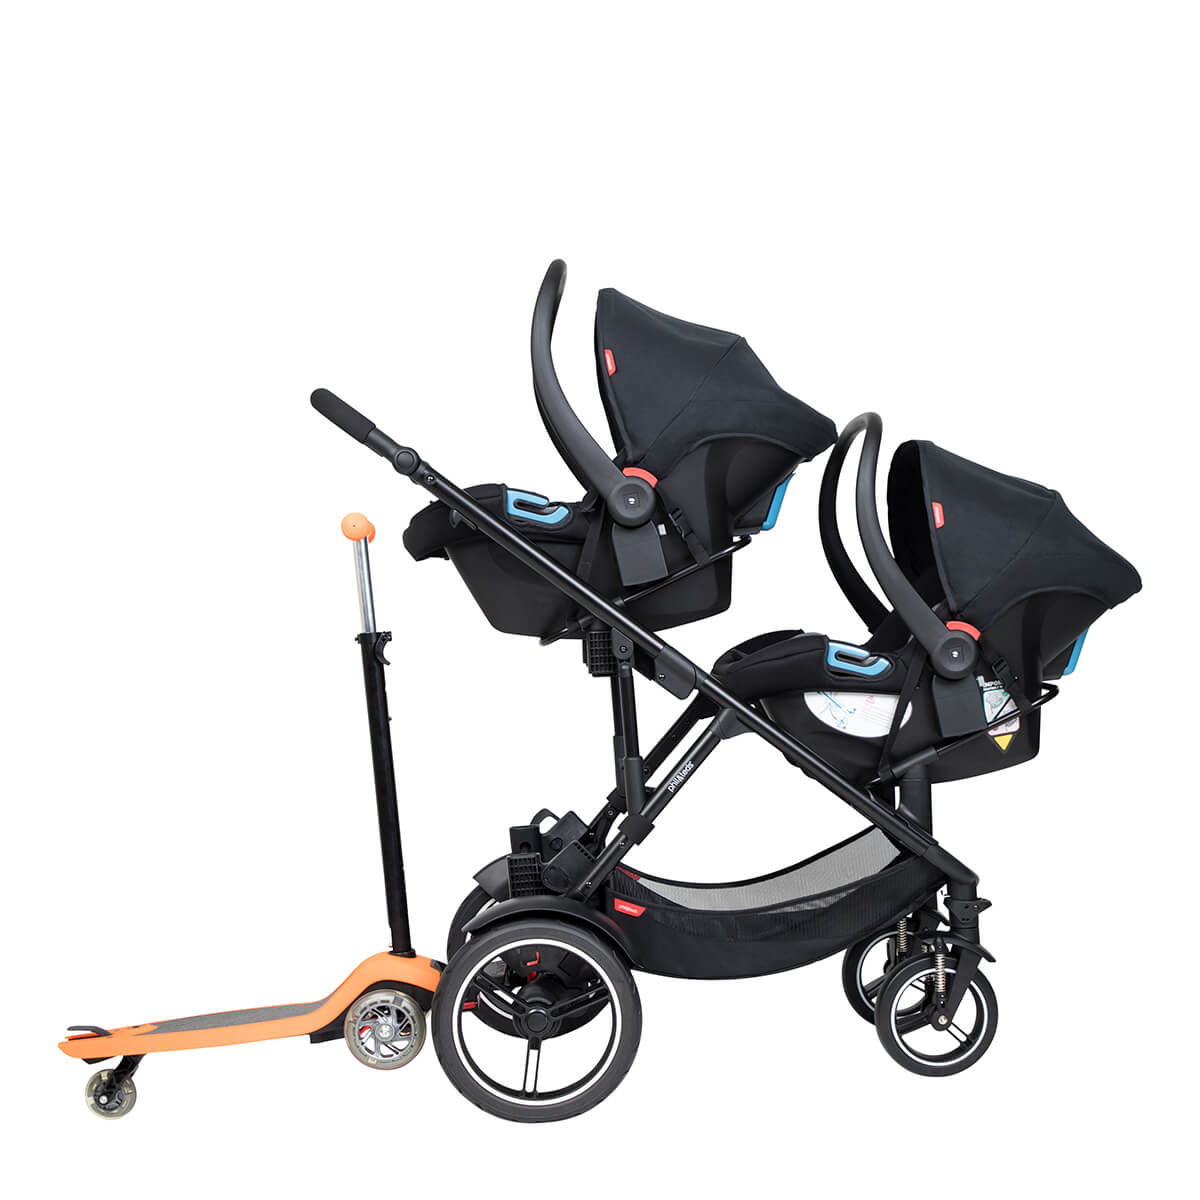 https://cdn.accentuate.io/4509529276504/19272835367000/philteds-voyager-buggy-with-double-travel-systems-and-freerider-stroller-board-in-the-rear-v1626484782296.jpg?1200x1200